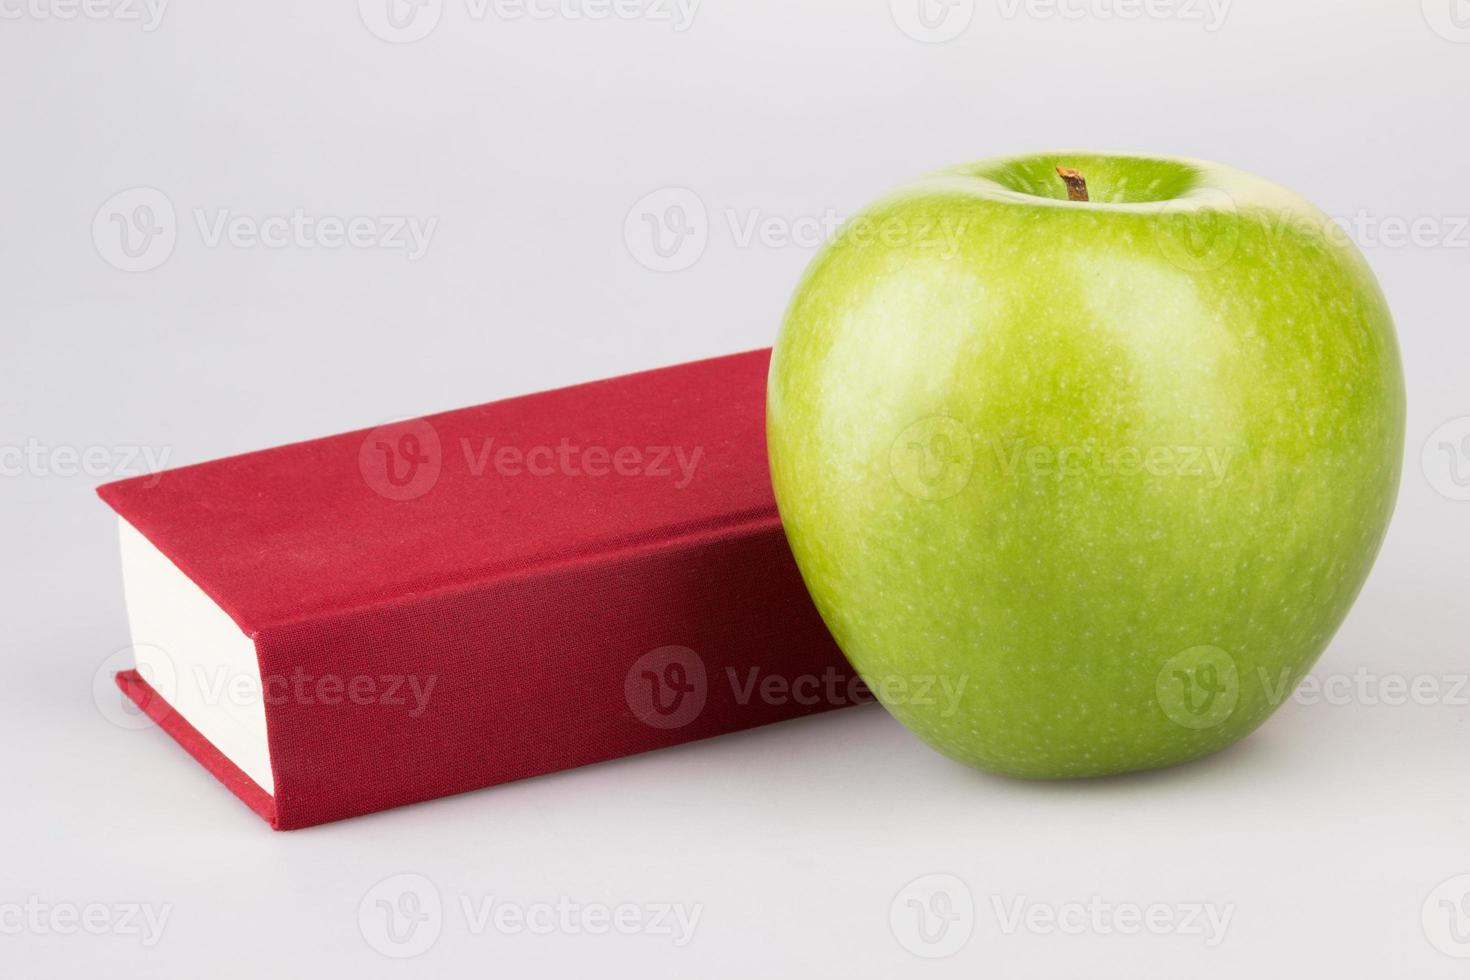 green apple with red book on white background photo